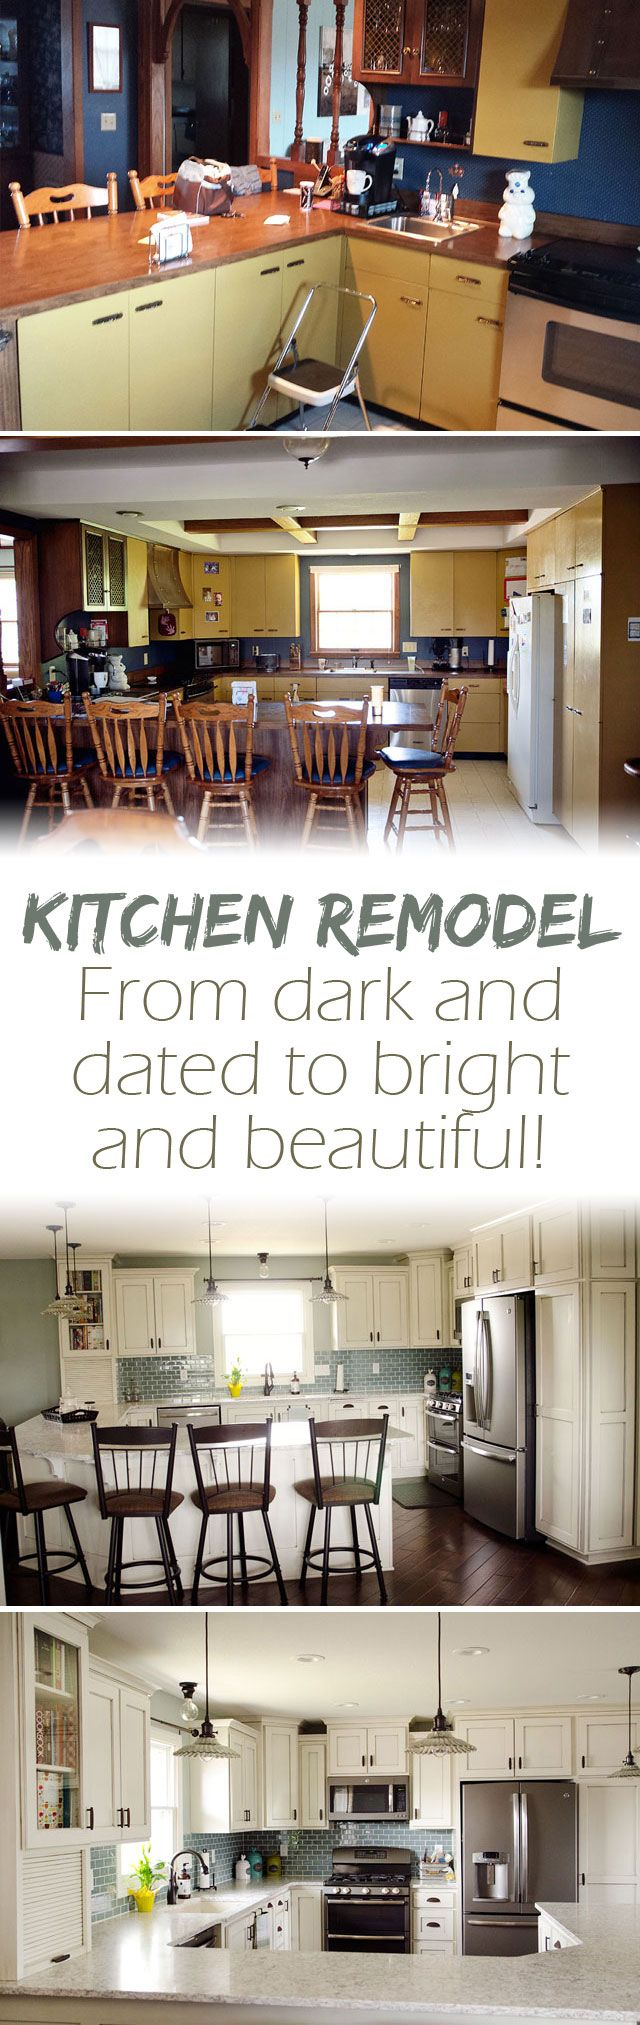 best 20 1970s kitchen remodel ideas on pinterest redoing kitchen remodel before after